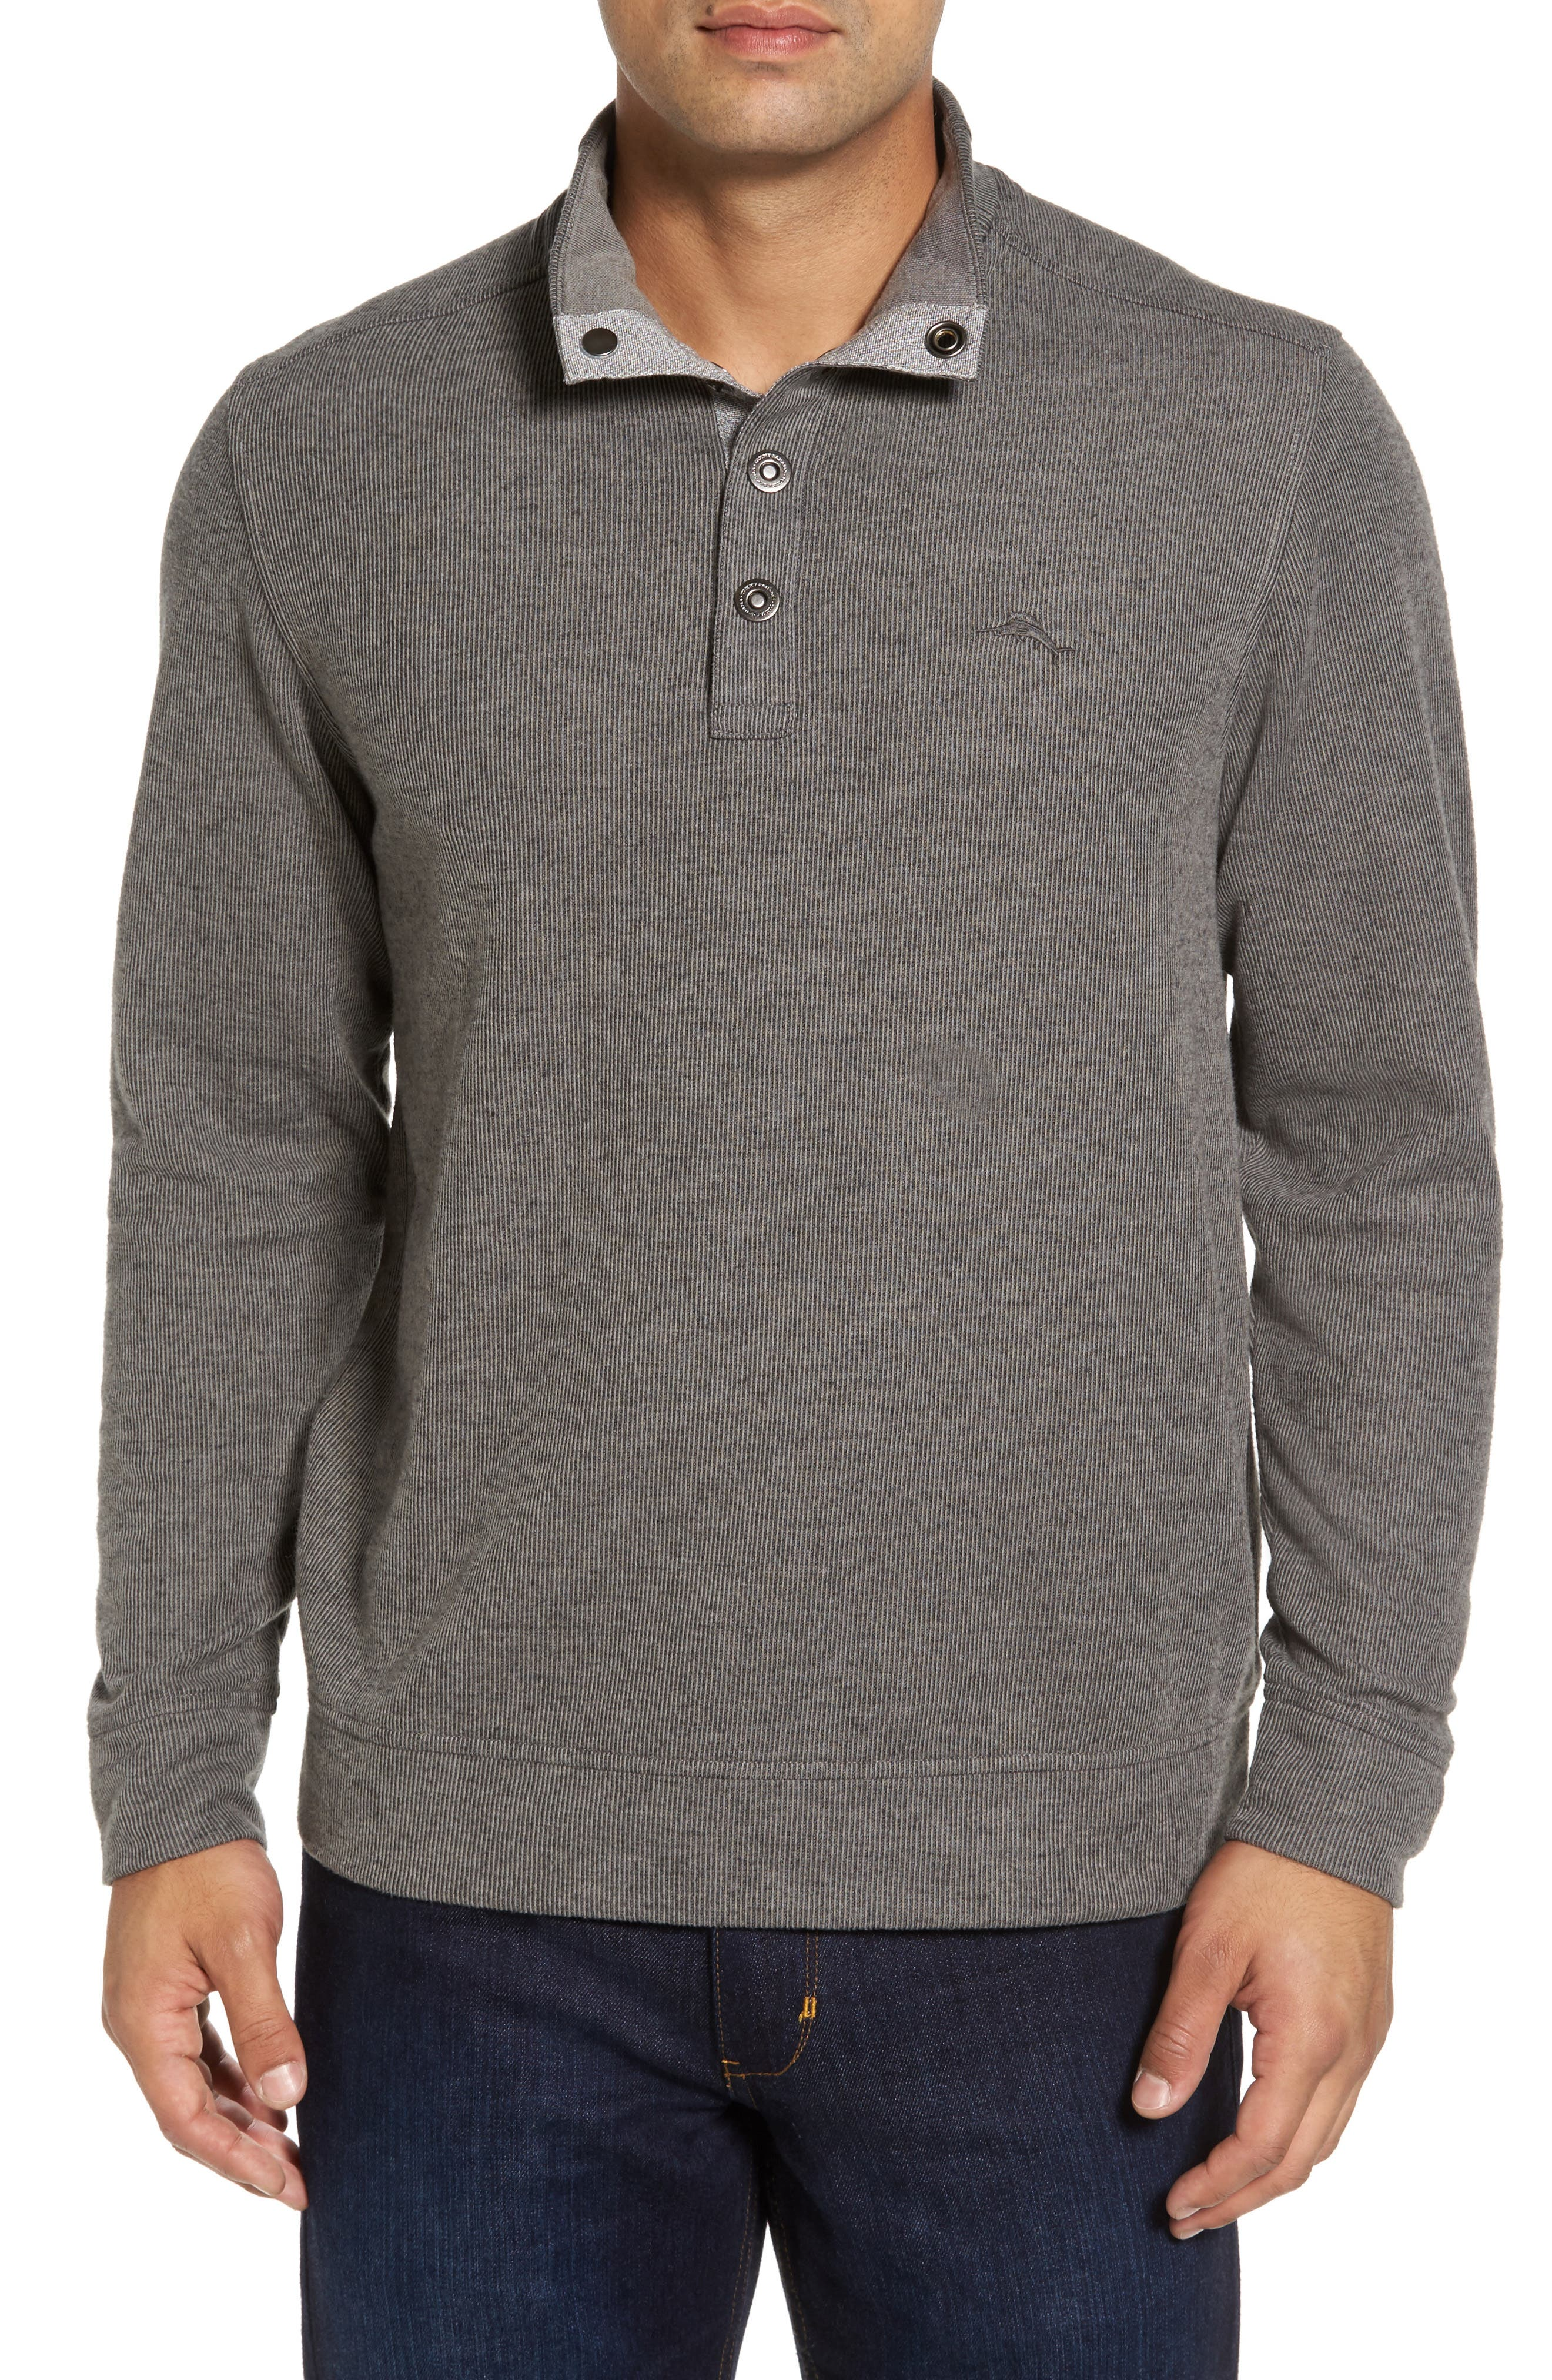 Cold Springs Snap Mock Neck Sweater,                         Main,                         color, 001